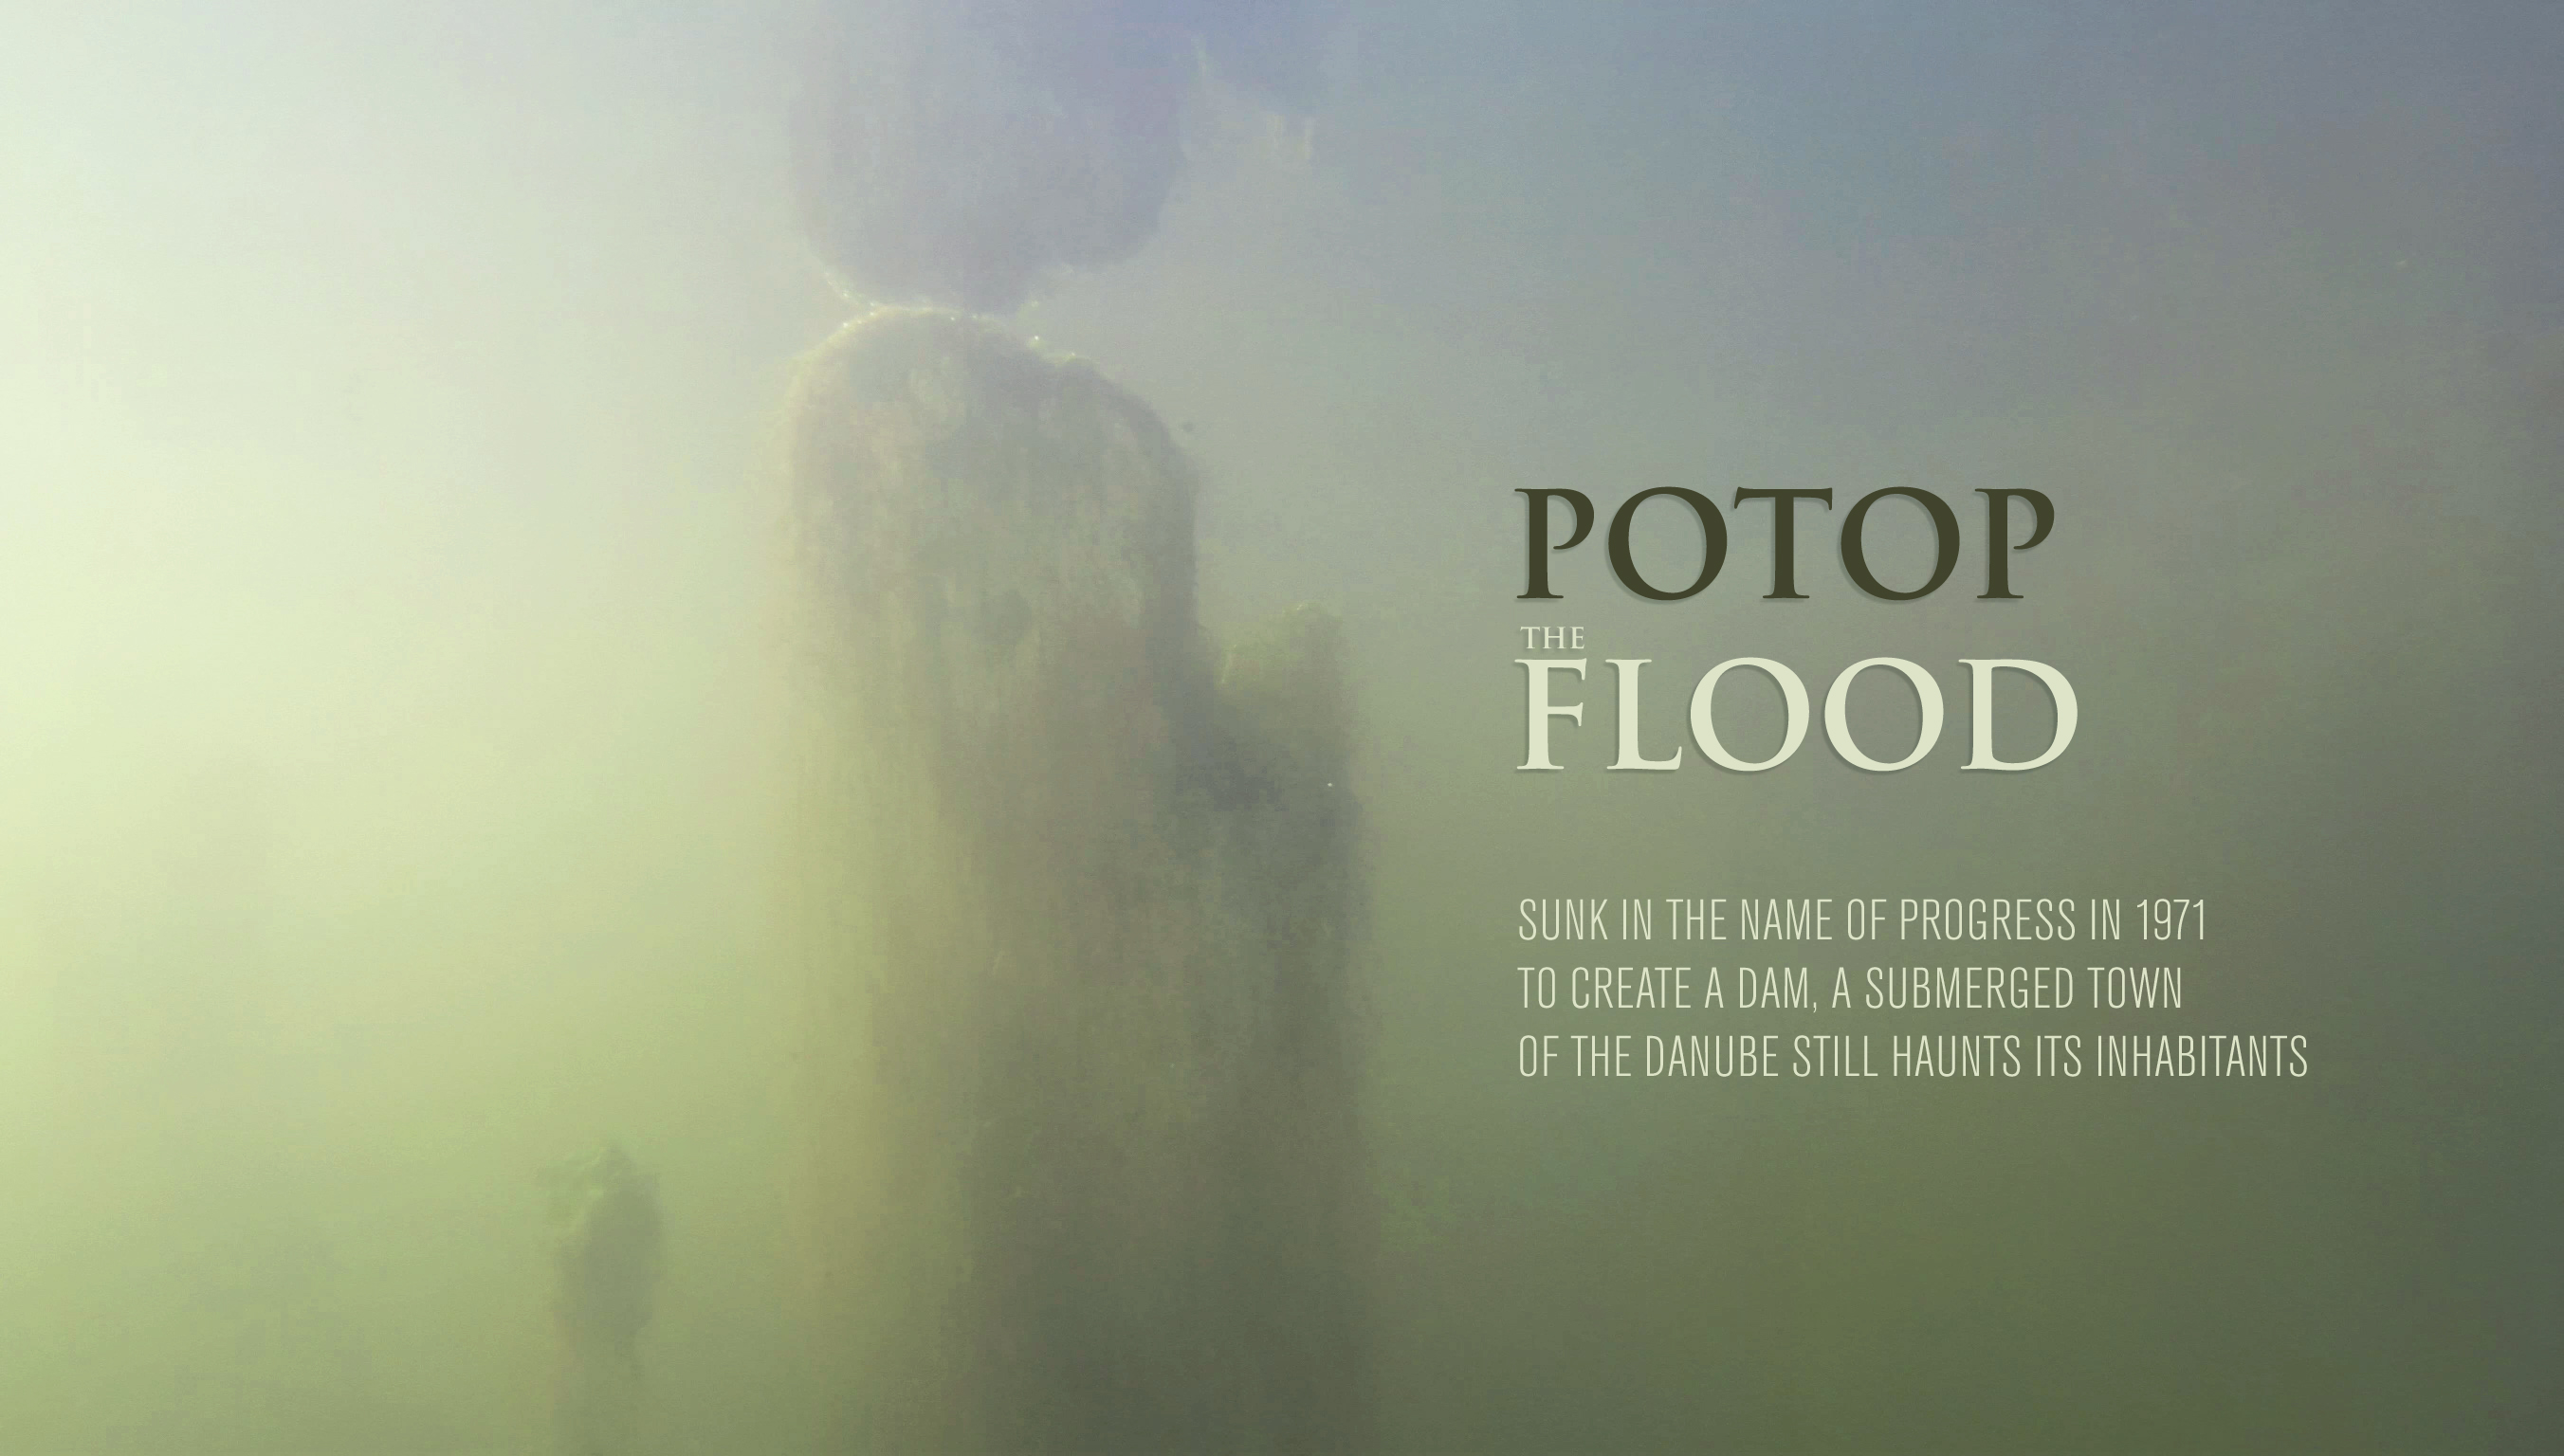 POTOP_THE_FLOOD